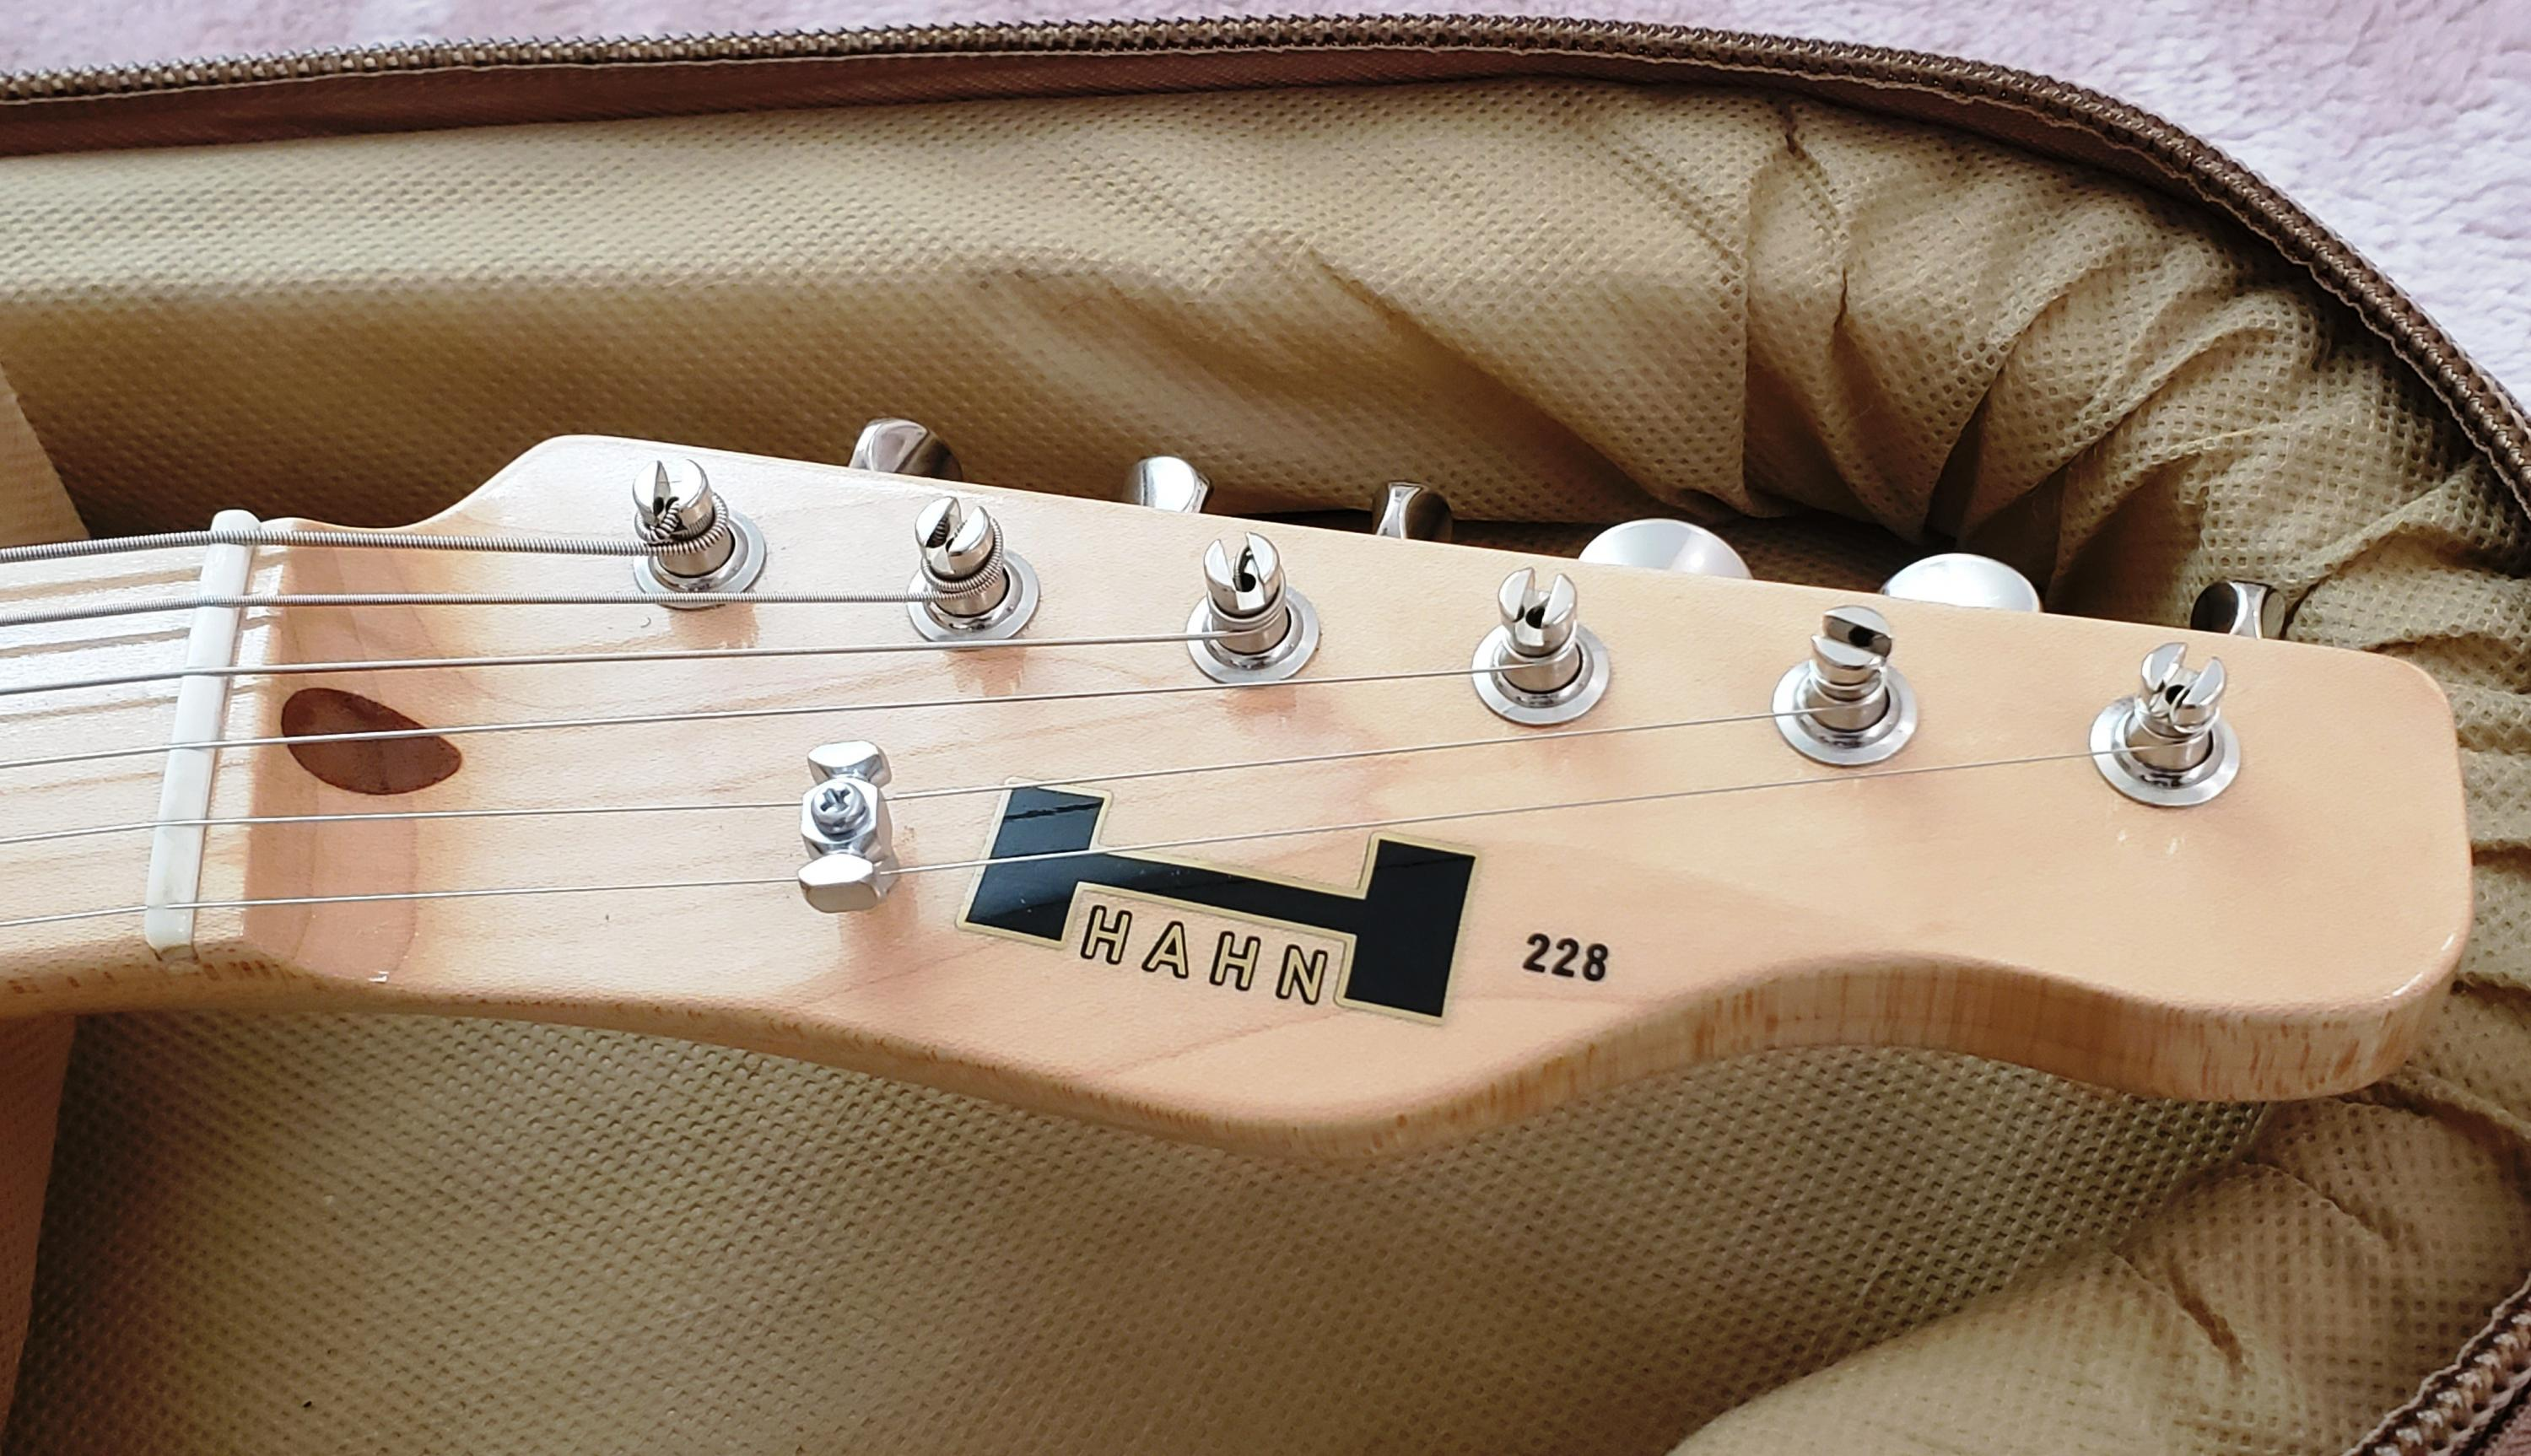 Telecaster Love Thread, No Archtops Allowed-20210116_161730-jpg